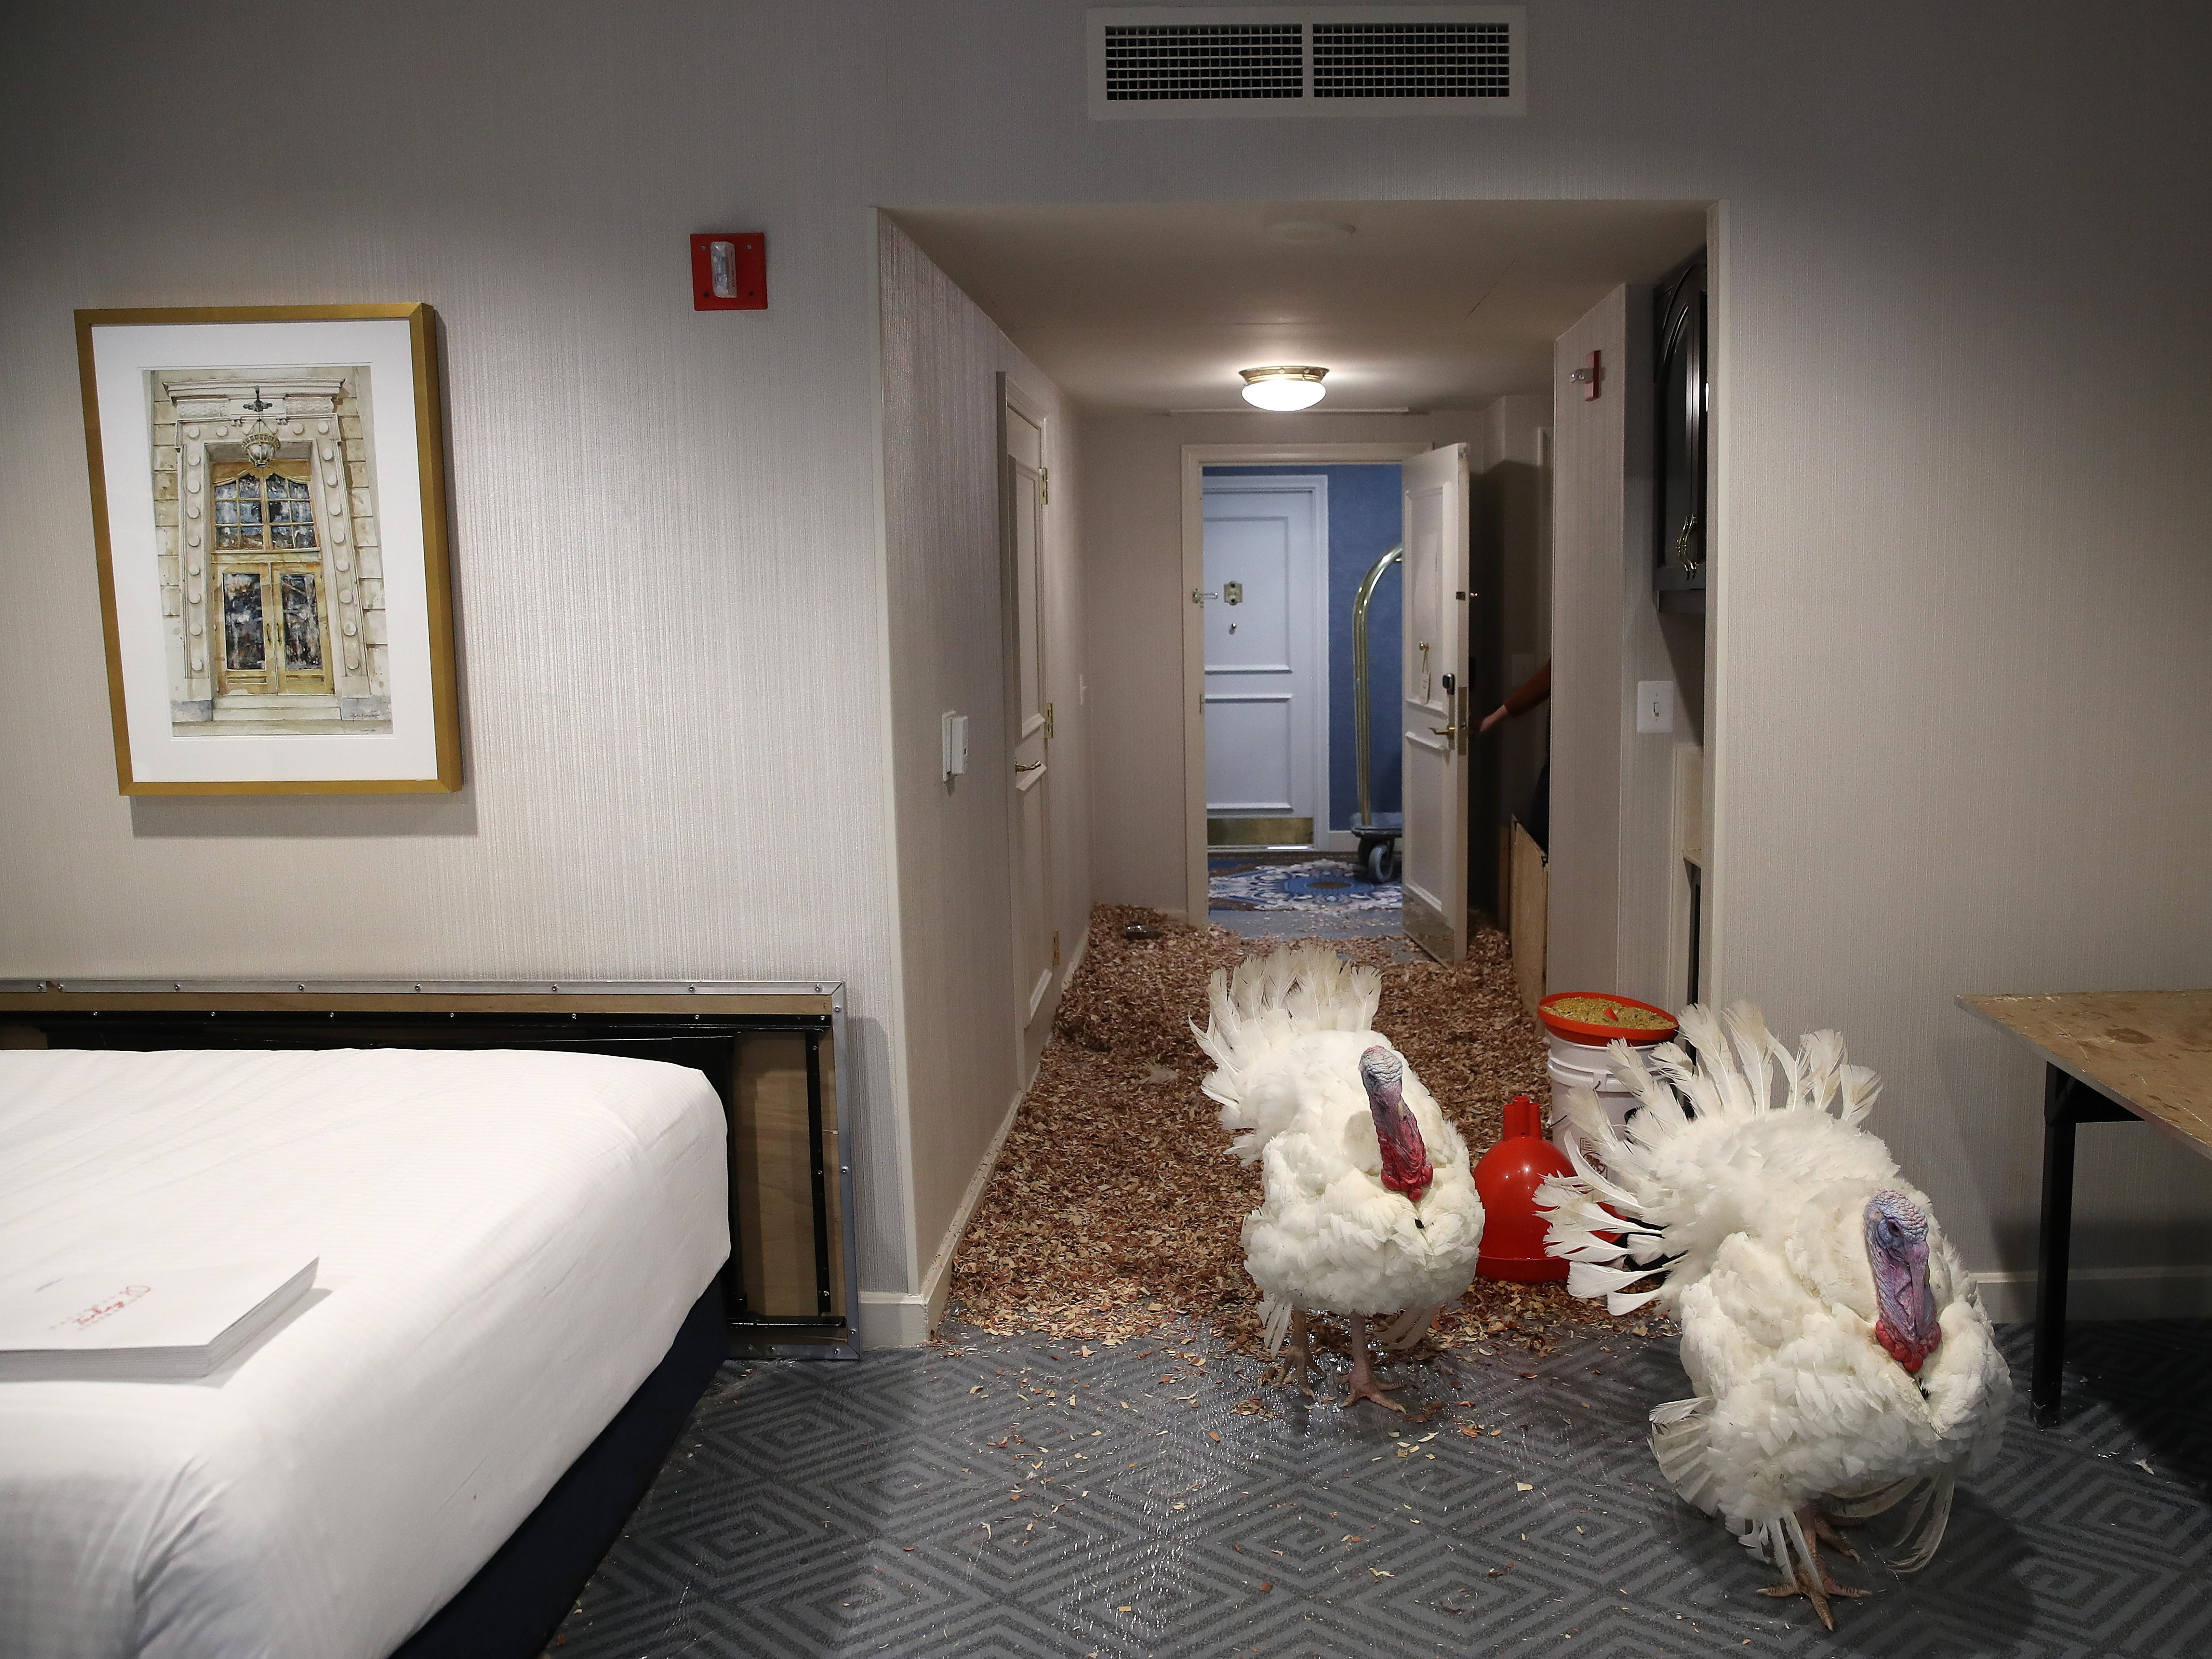 Peas and Carrots, the National Thanksgiving Turkey and its alternate, walk in their hotel room at the Willard Hotel after being introduced to members of the media during a press conference held by the National Turkey Federation November 19, 2018 in Washington, DC. The two turkeys will both be 'pardoned' following the presentation of the national turkey to U.S. President Donald Trump on Tuesday.